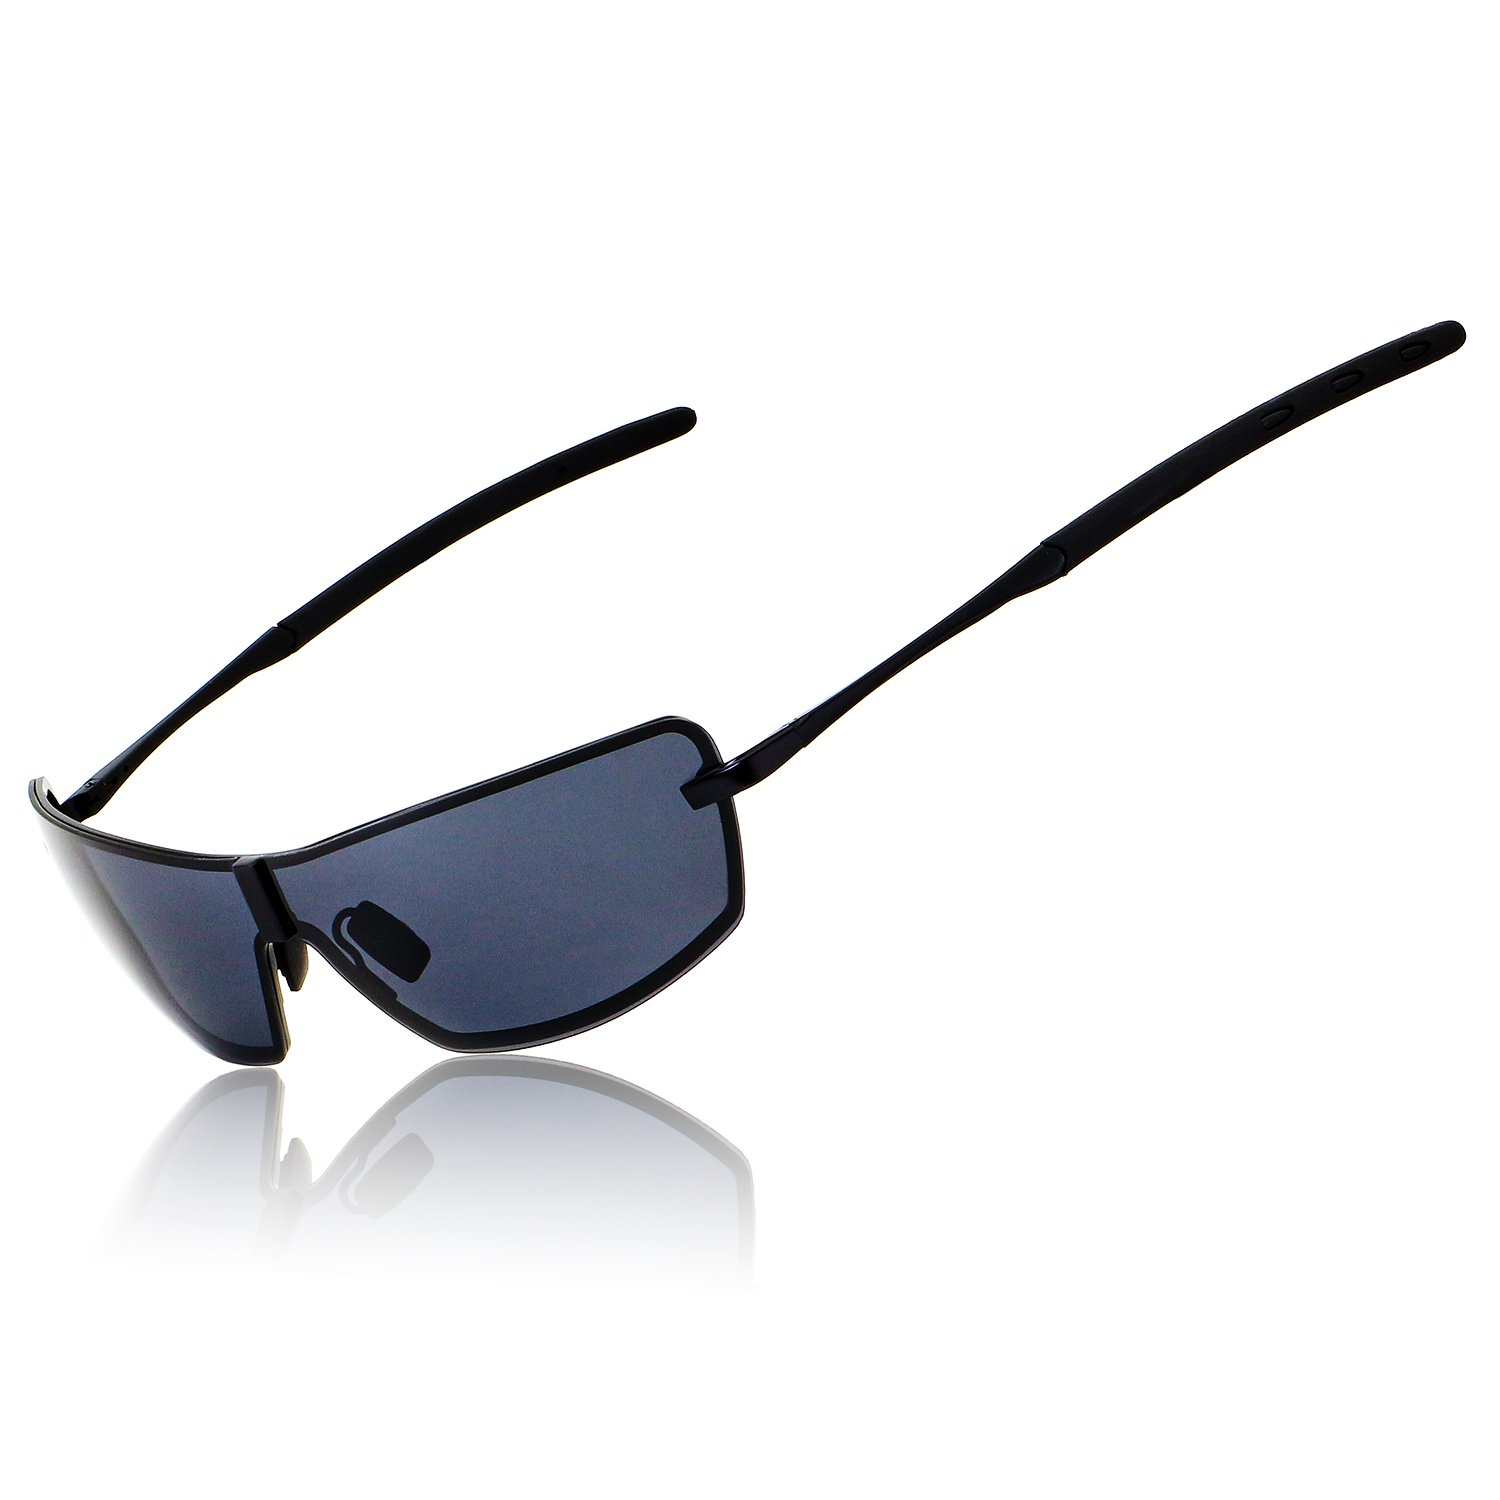 Ronsou Mens UV400 Polarized Sunglasses Mirrored For Driving Fishing Golf Outdoor with Gift Case black frame/gray lens